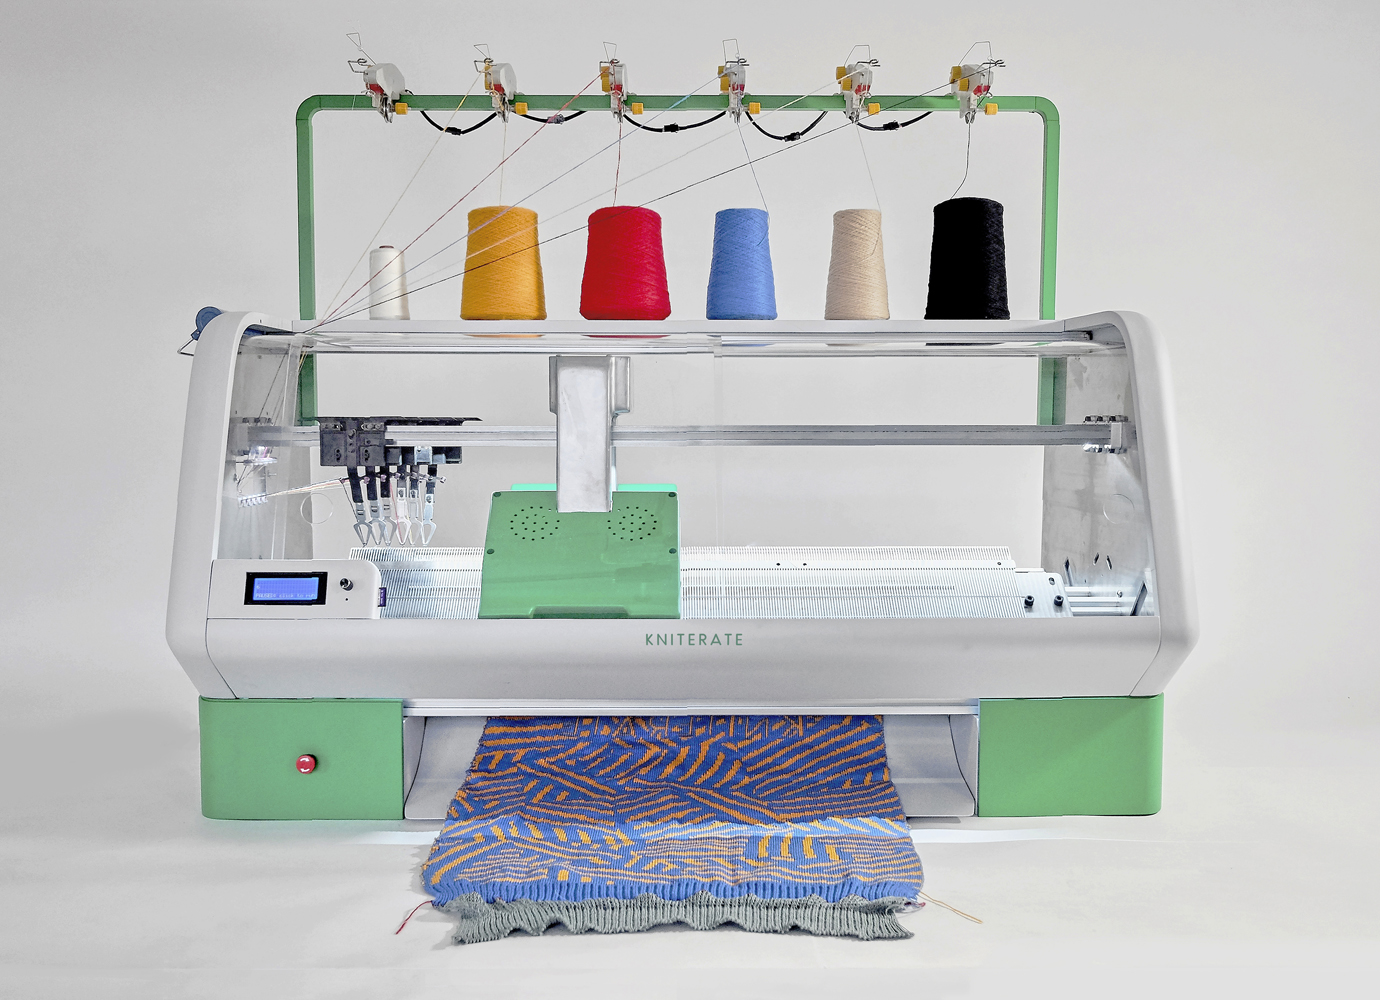 Kniterate: La máquina digital para tejer